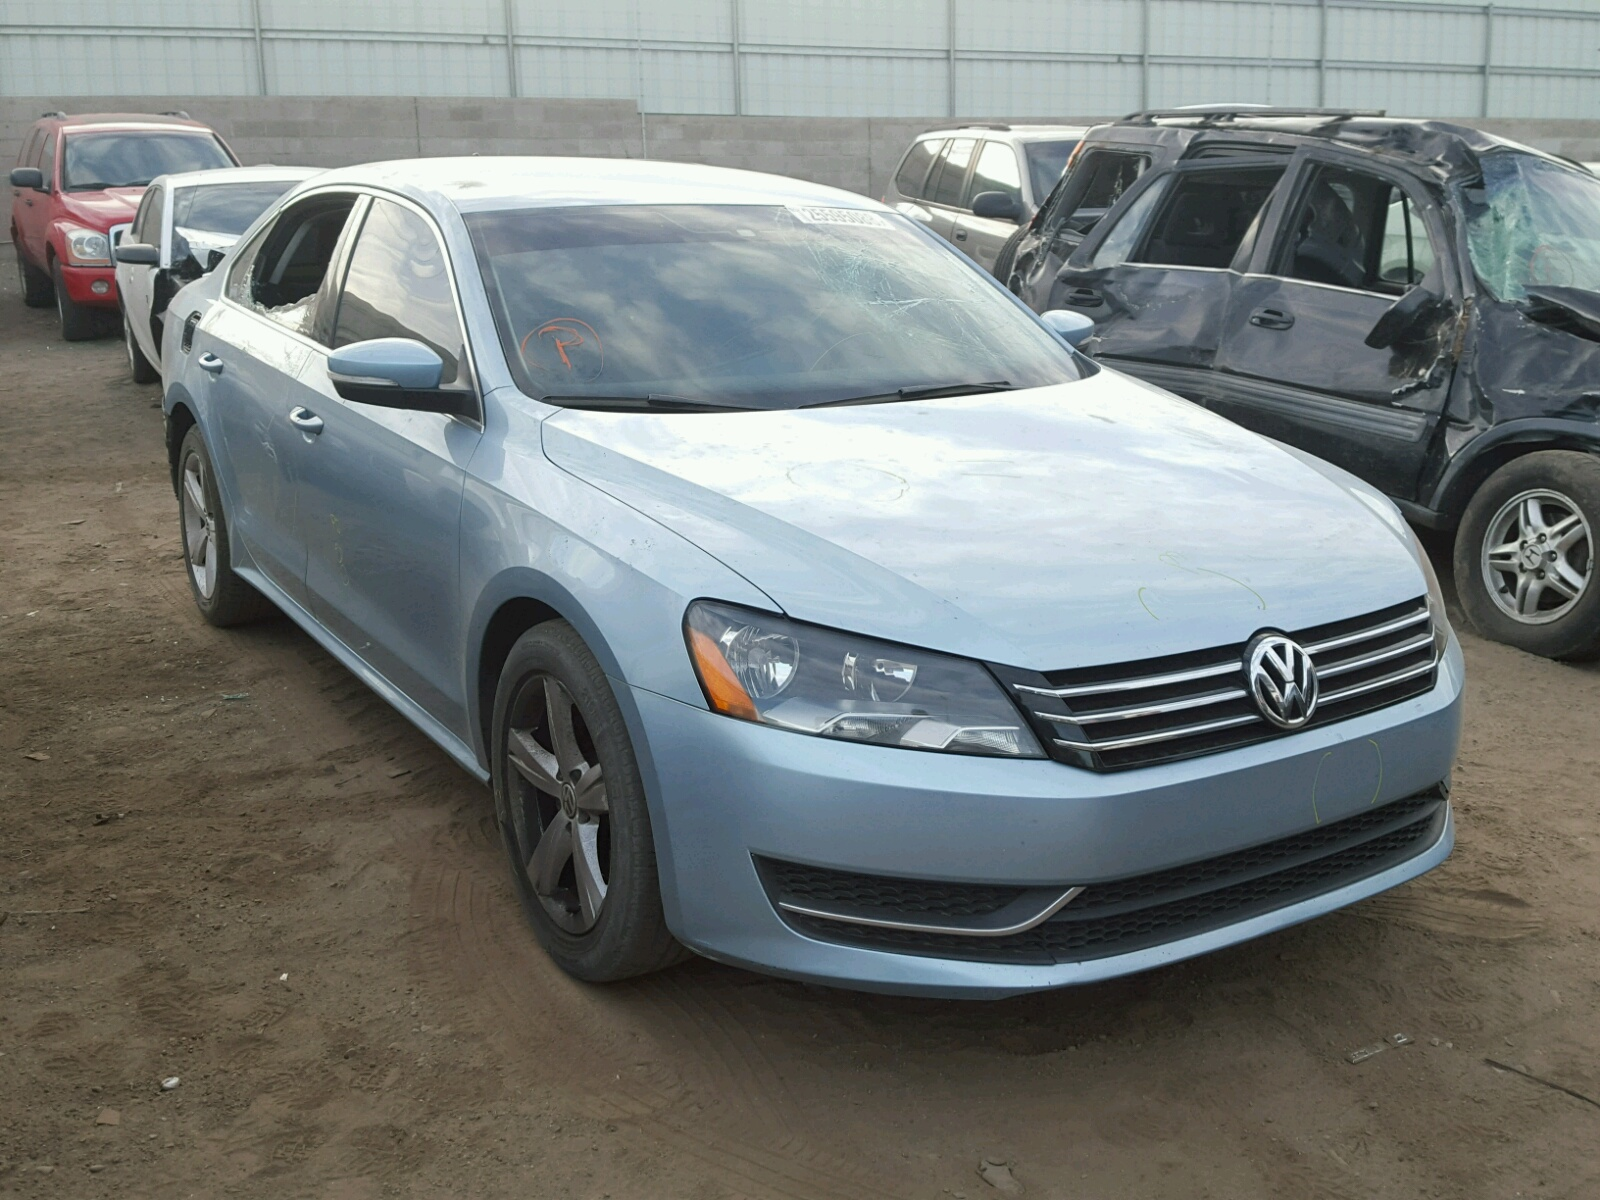 specials and cc image deals volkswagen vw finance nm albuquerque lease original offers main exterior new